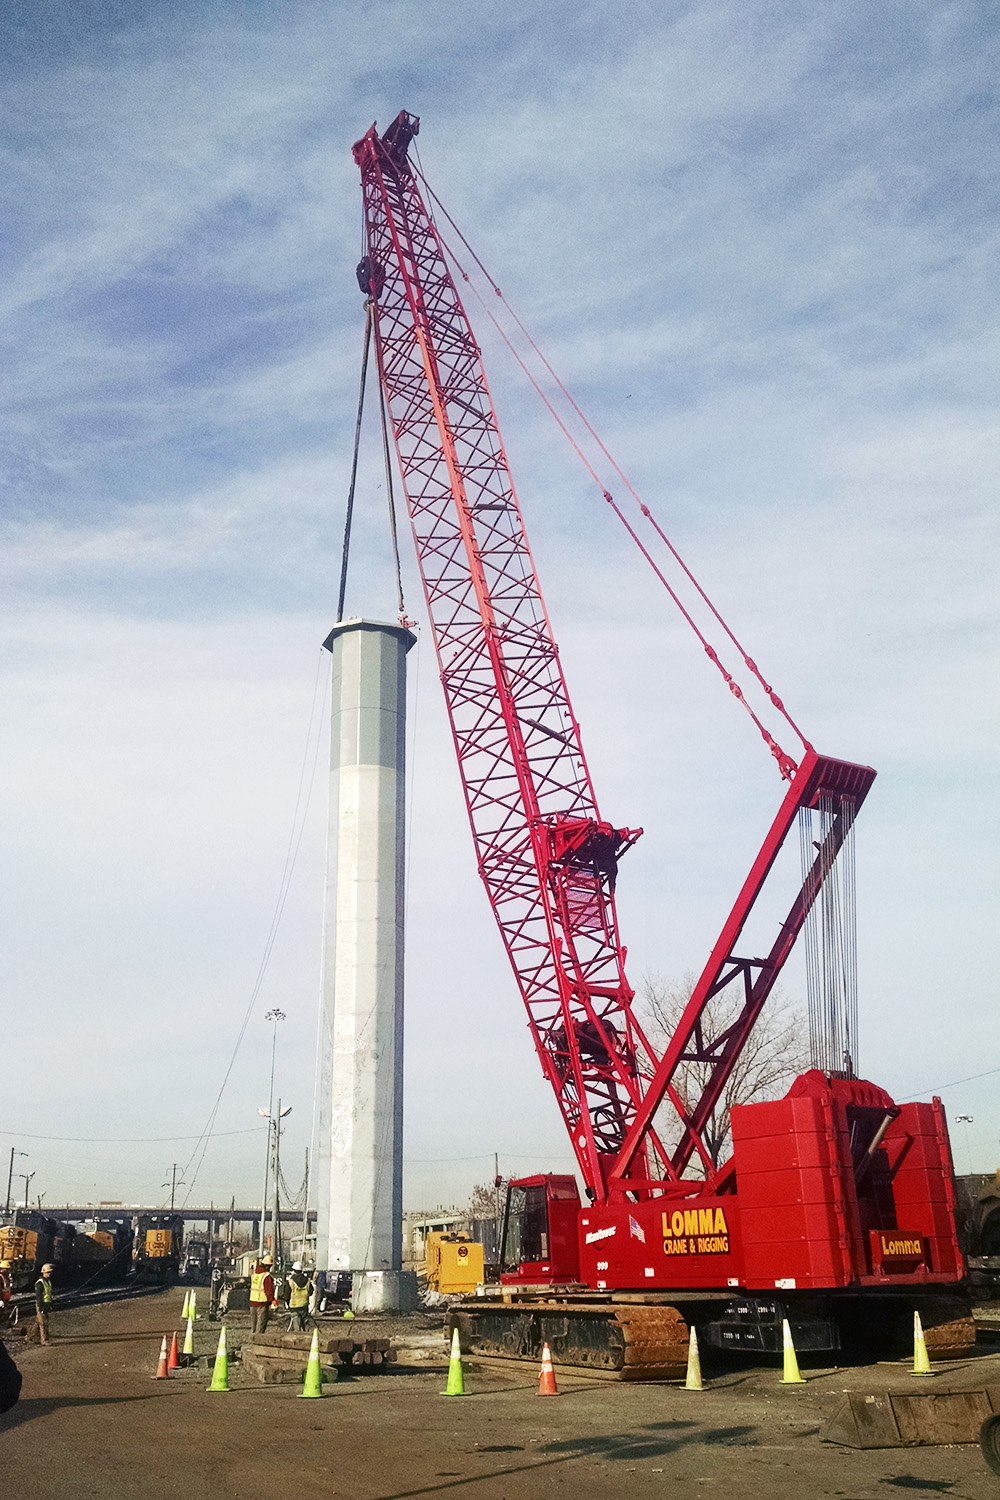 aldridge-electric-utlity-construction-contractor-electrical-infrastructure-projects-nationwide-helical-piles-foundations.jpg